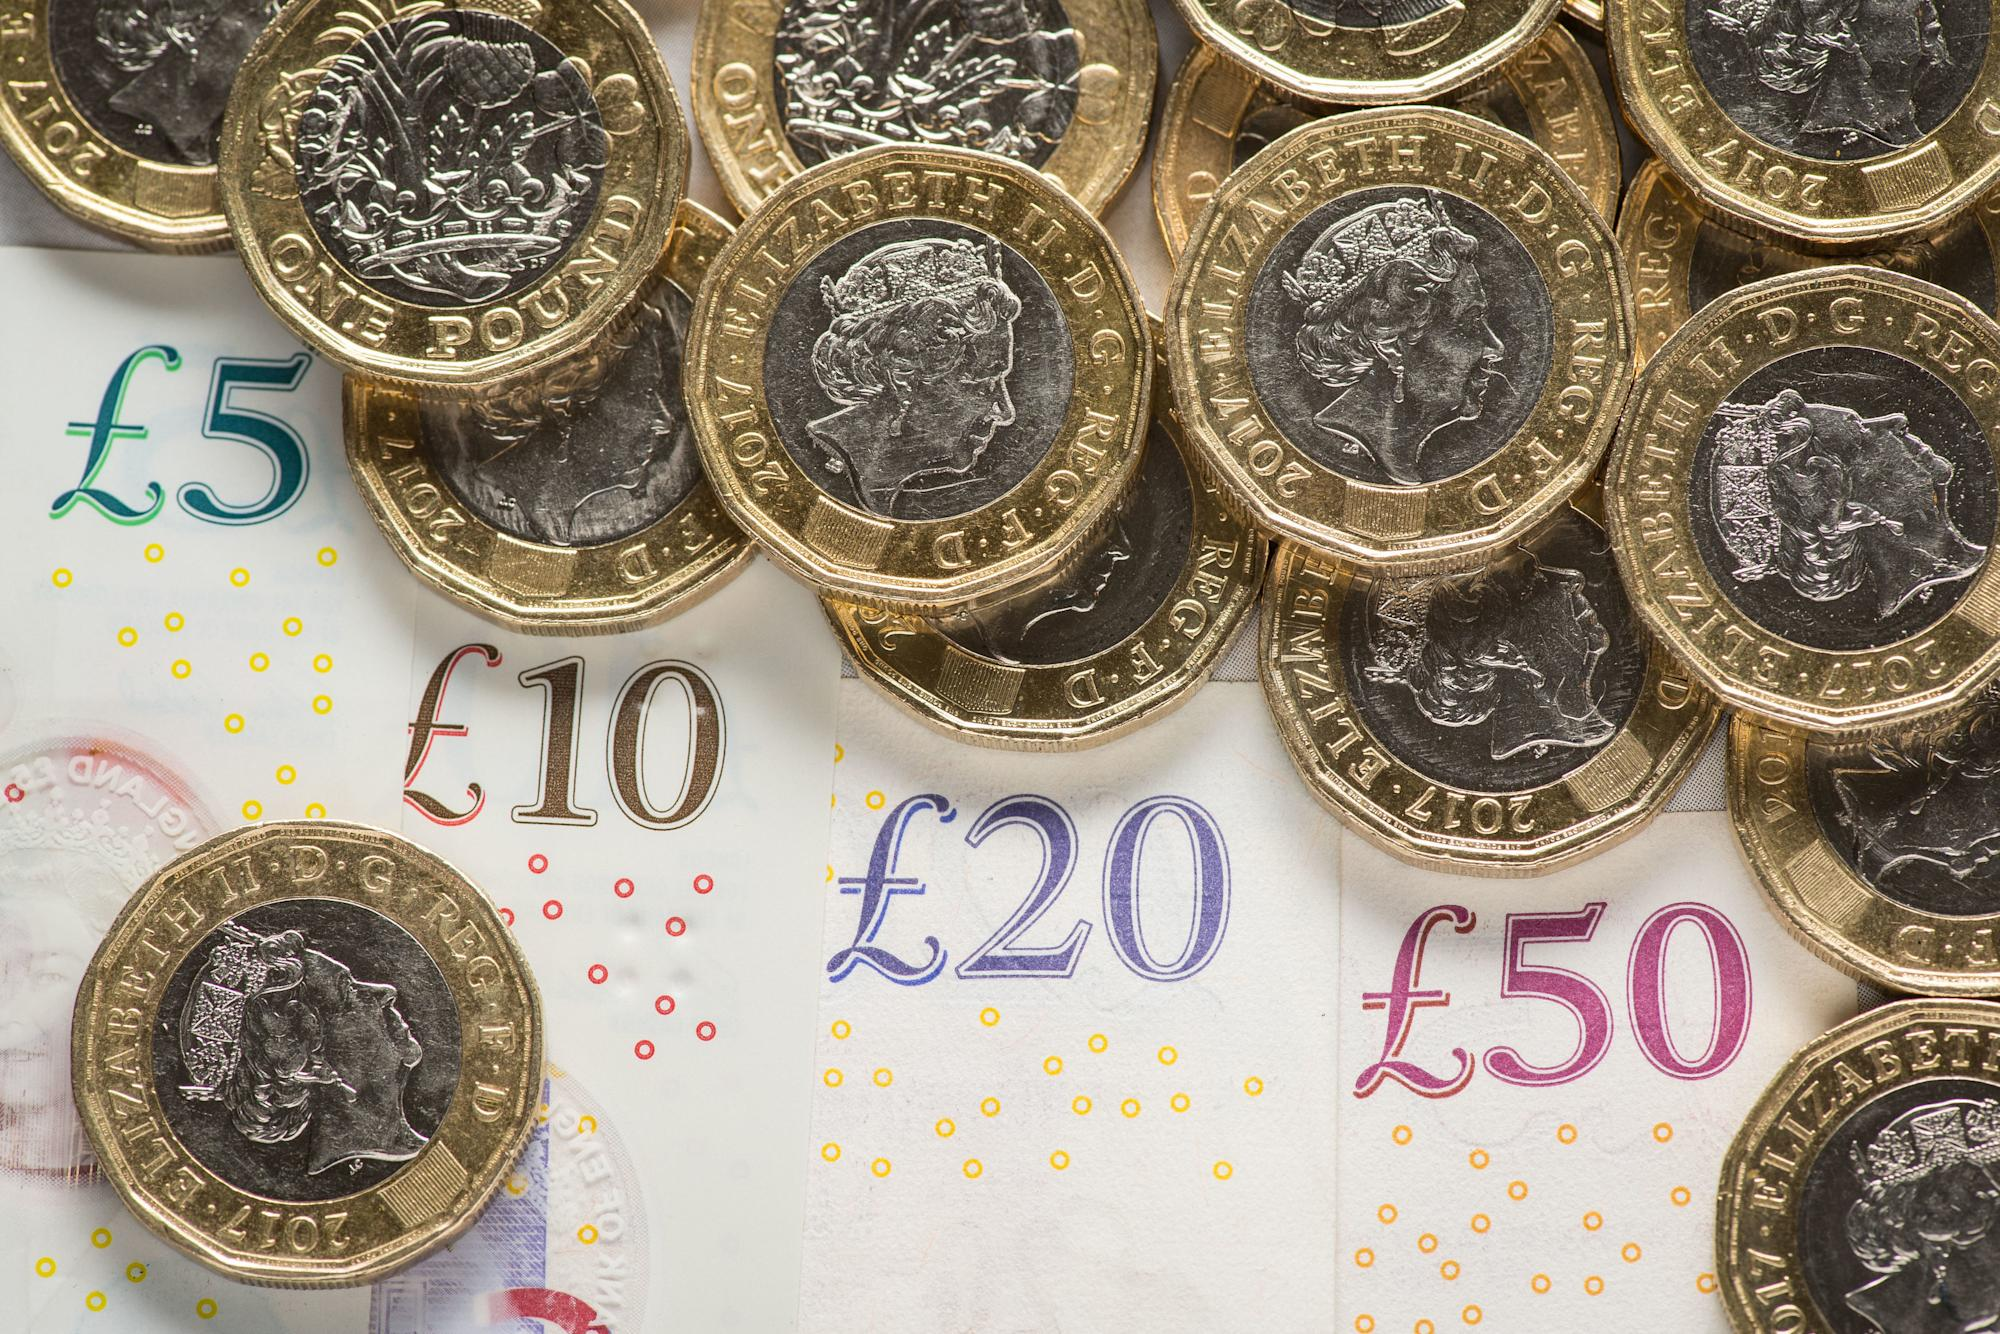 UK average consumer loan shoots up £800 in 2020